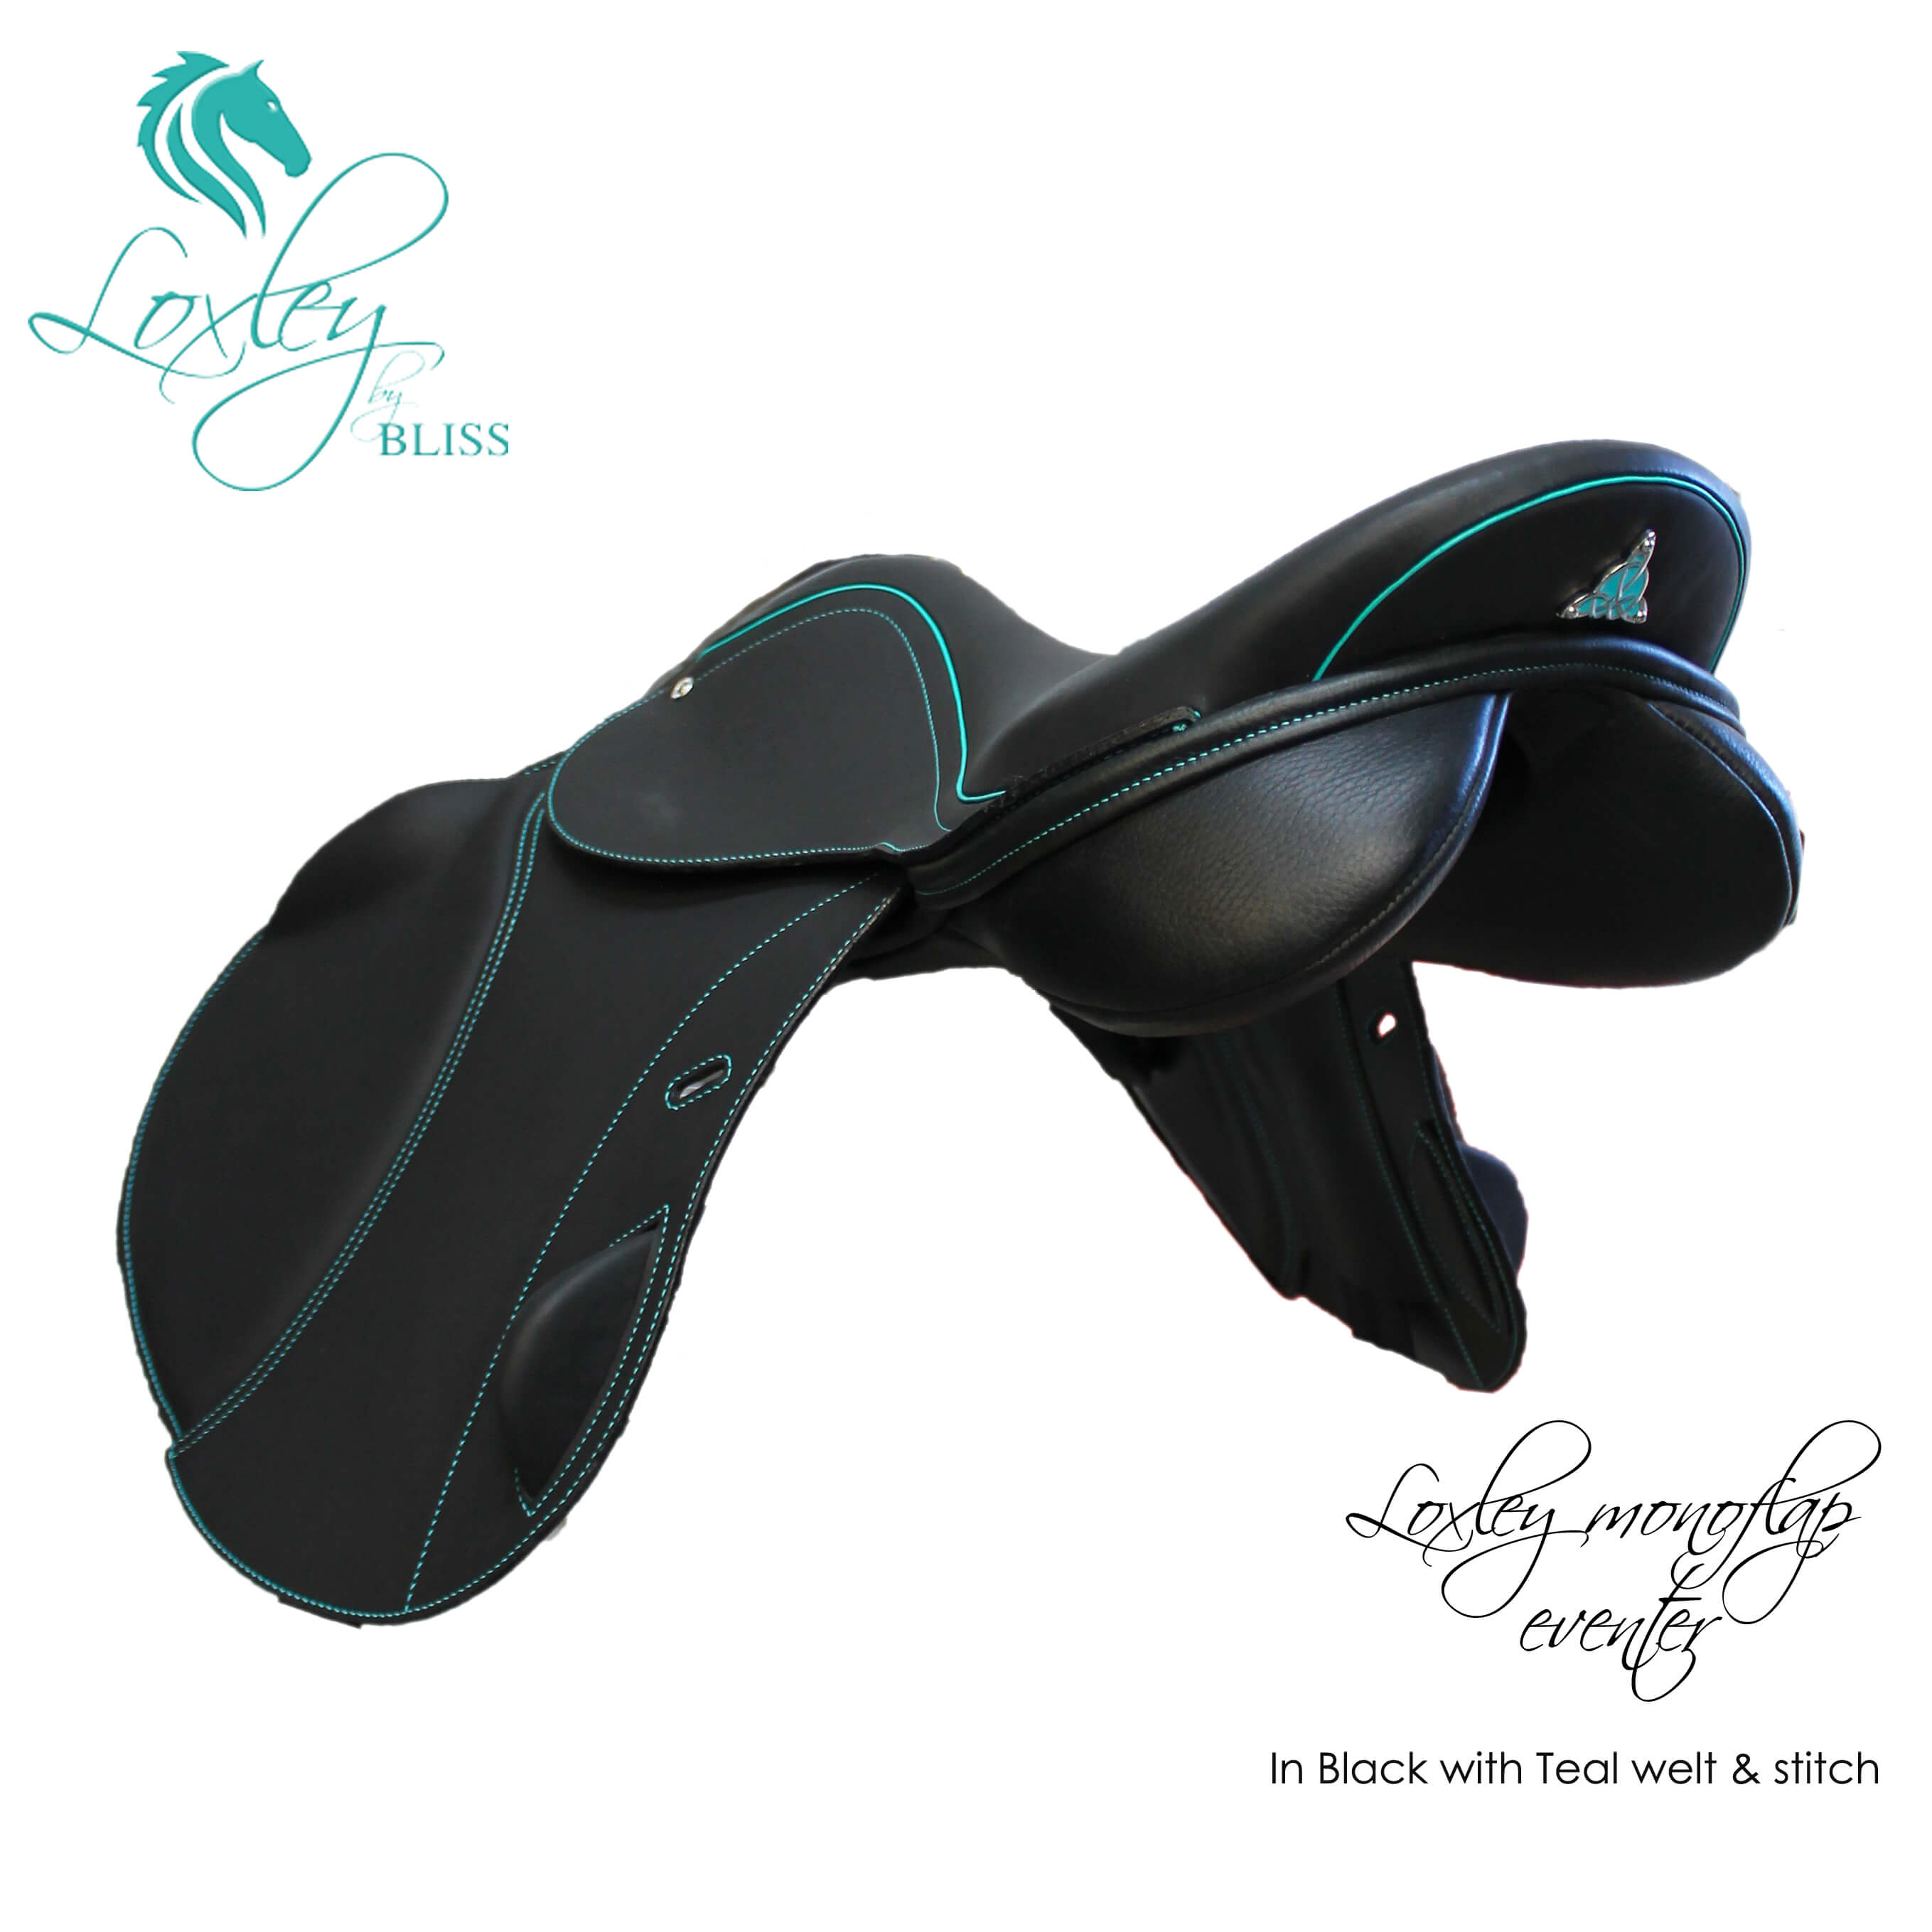 6 Loxley Eventer Mono Black & teal 34